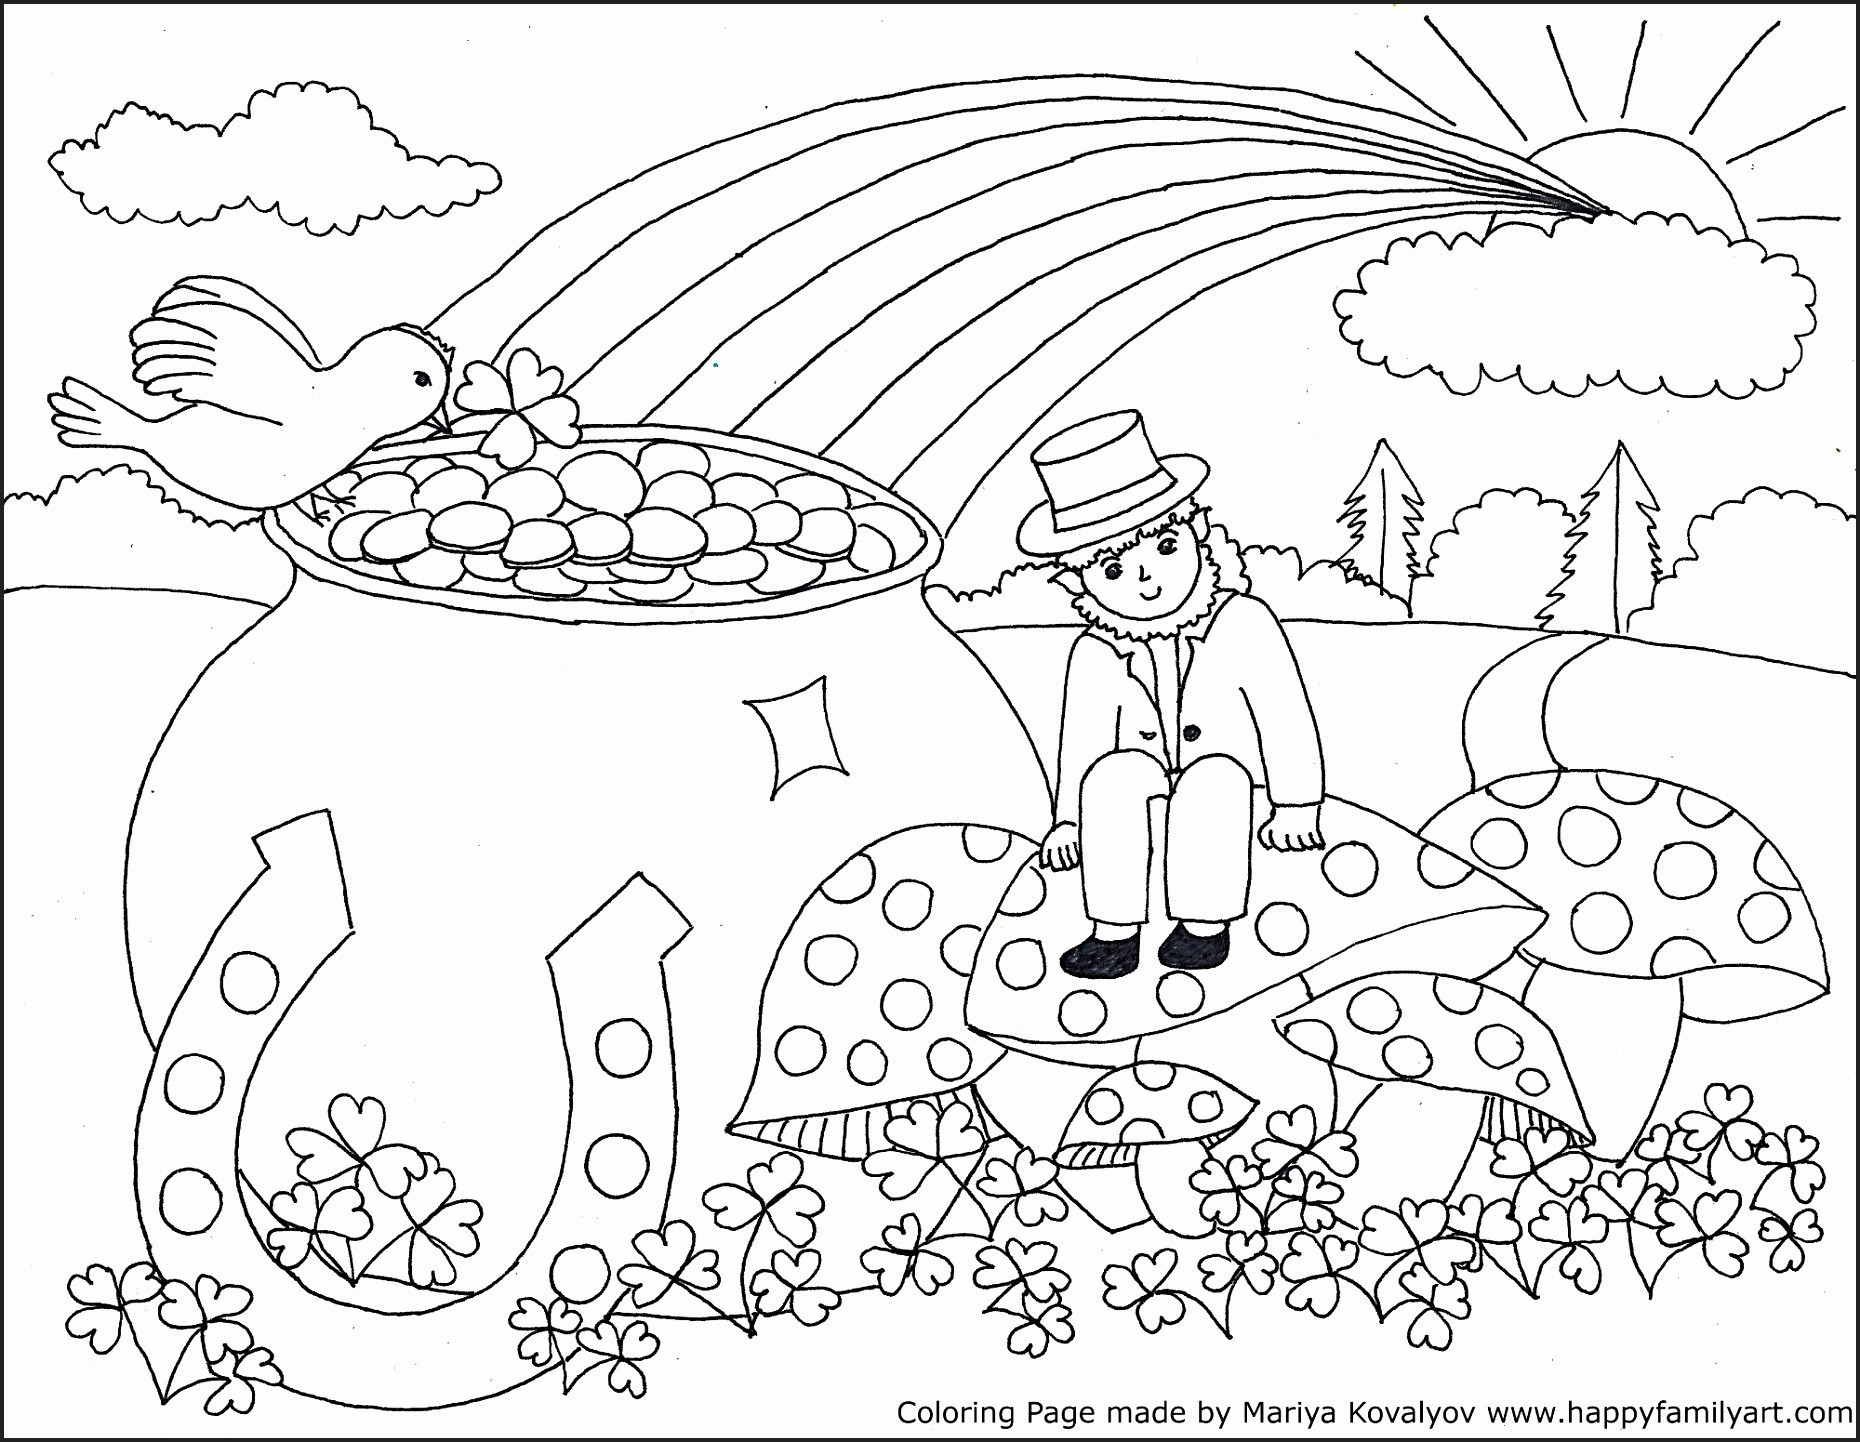 Coloring Pages : St Patricks Dayng Pages For Kids With Medquit Free - Free Printable Saint Patrick Coloring Pages